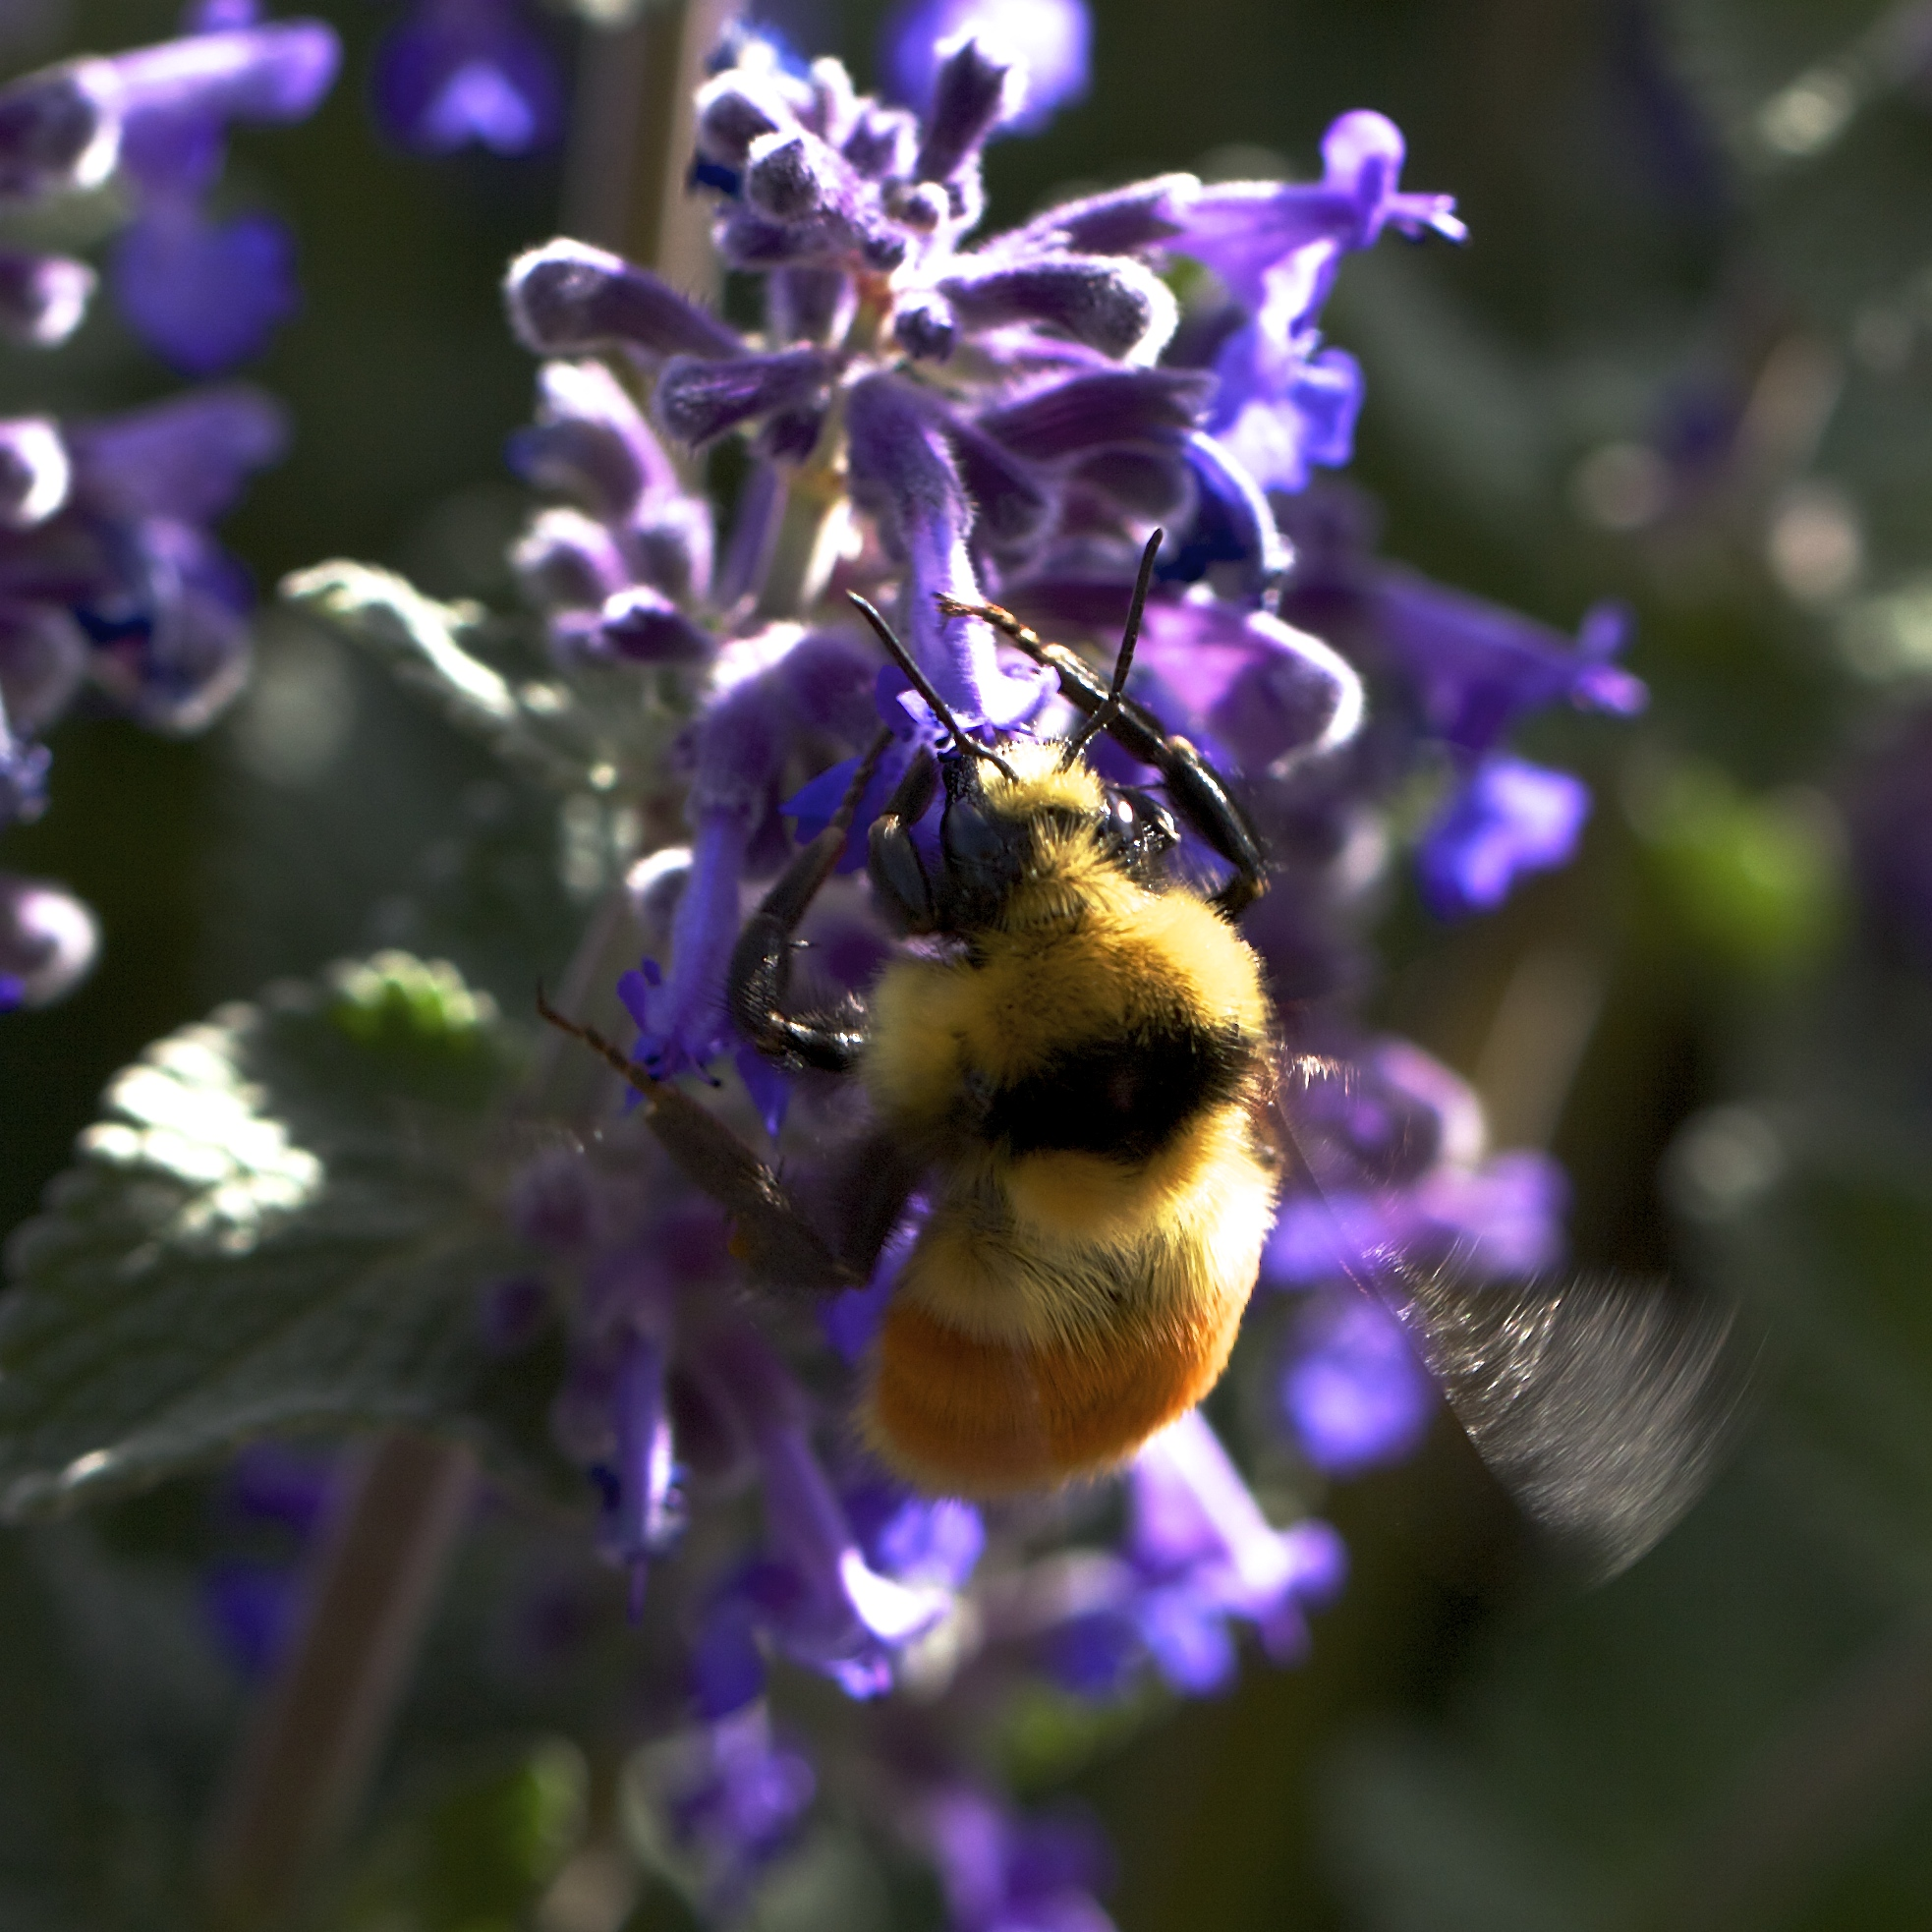 At least five kinds of bumblebees are feeding in the garden. When I get time, when the roller coaster slows a bit, I'll turn to the Bumblebee Guide and find all their names.